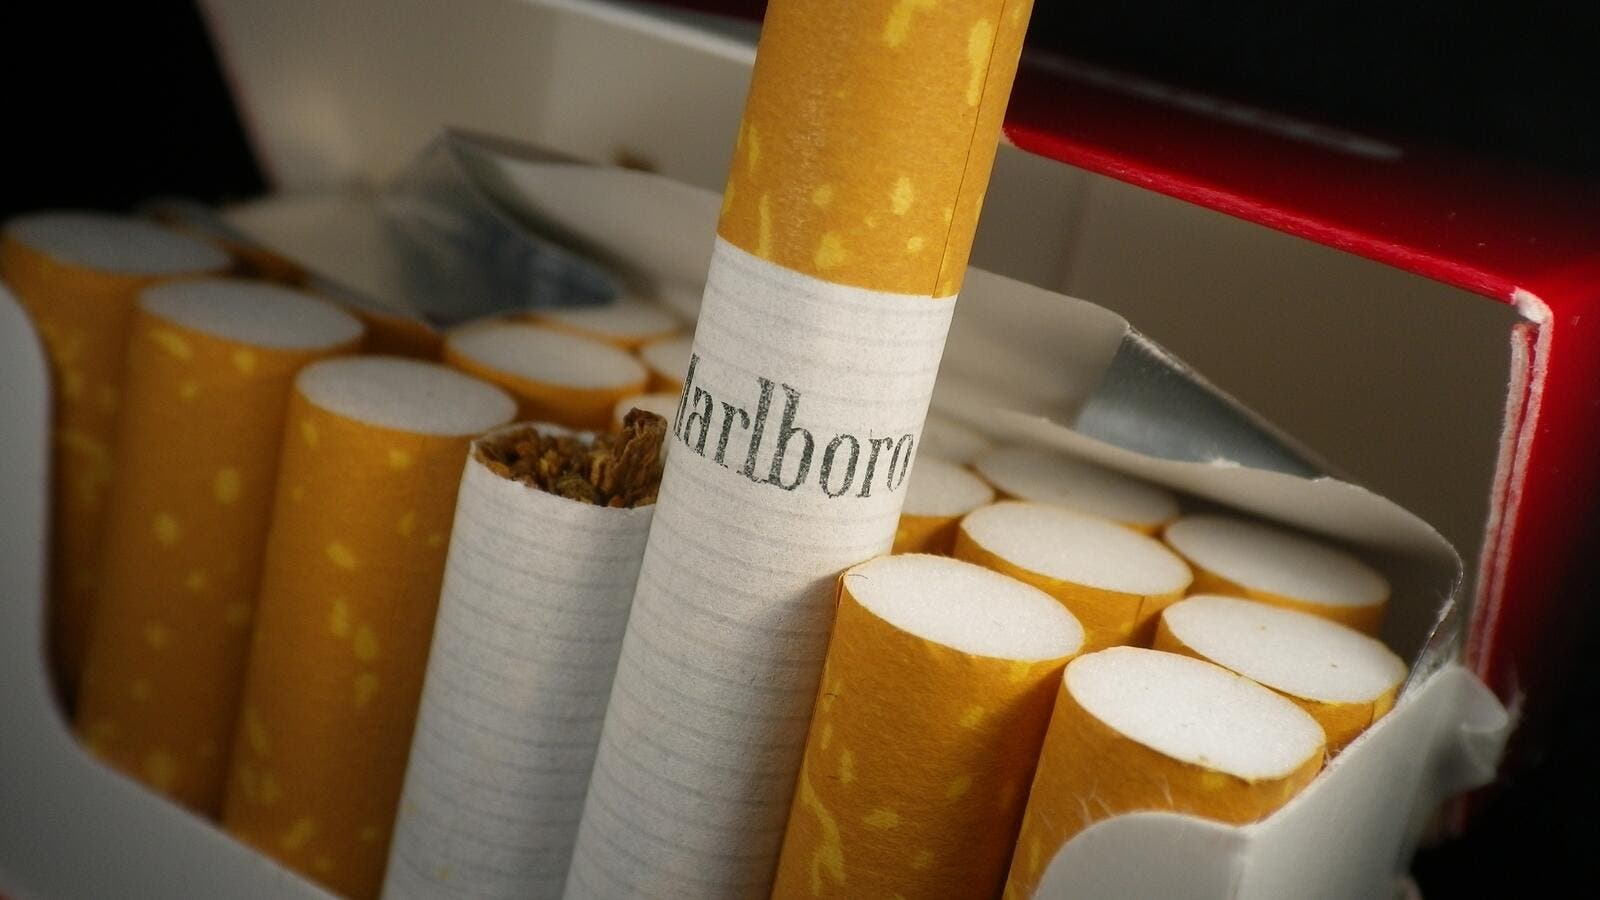 A 100% tax has been placed on cigarettes in Saudi Arabia from today (Wikimedia Commons)